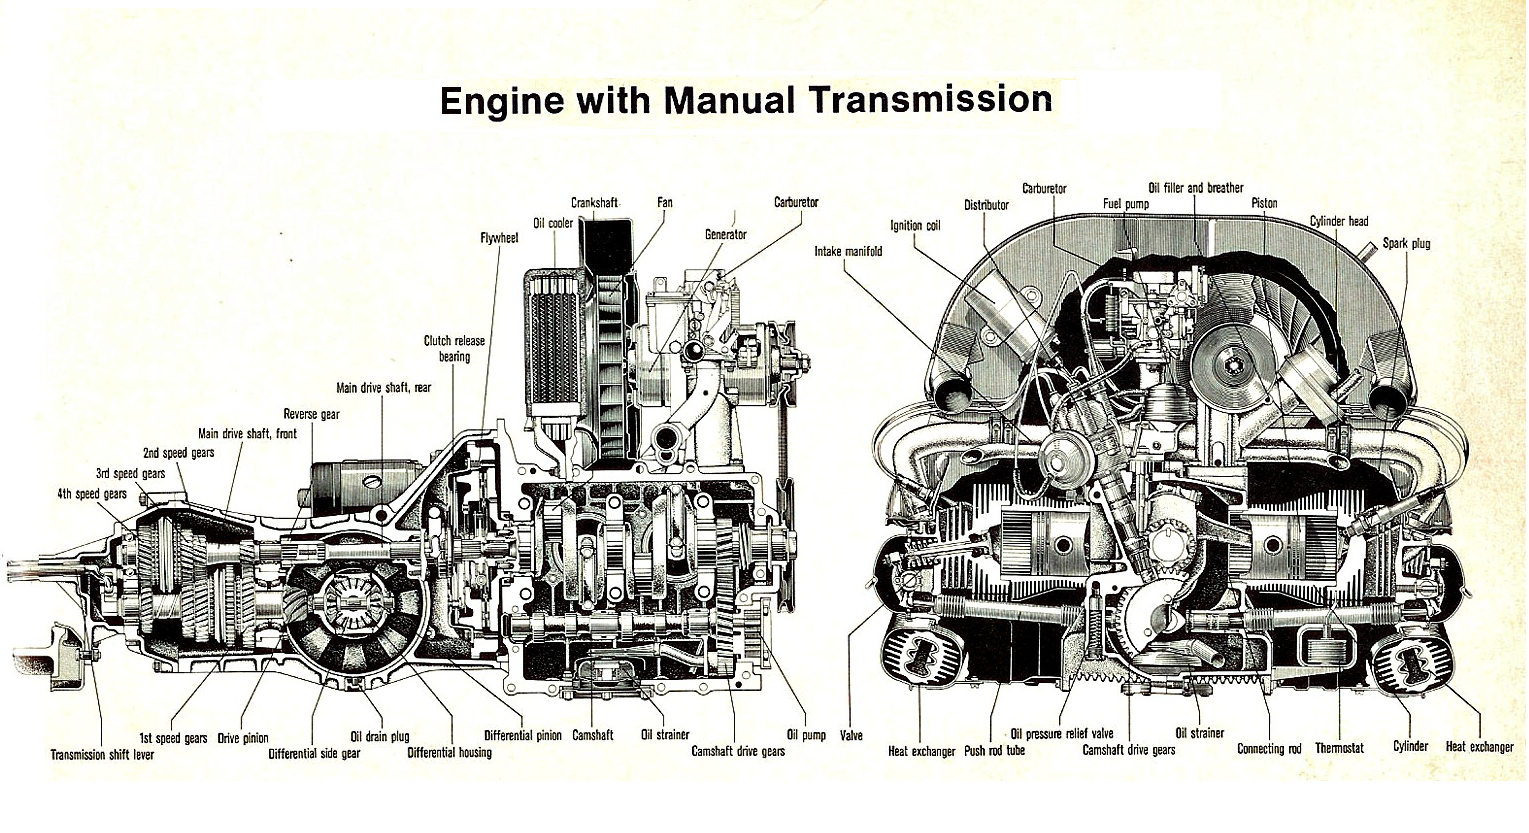 [QNCB_7524]  2000cc Vw Engine Diagram Diagram Base Website Engine Diagram -  UMLDIAGRAMSOFTWARE.3RDGENERATIONNATION.DE | 2000cc Vw Engine Diagram |  | Diagram Base Website Full Edition - 3rdgenerationnation